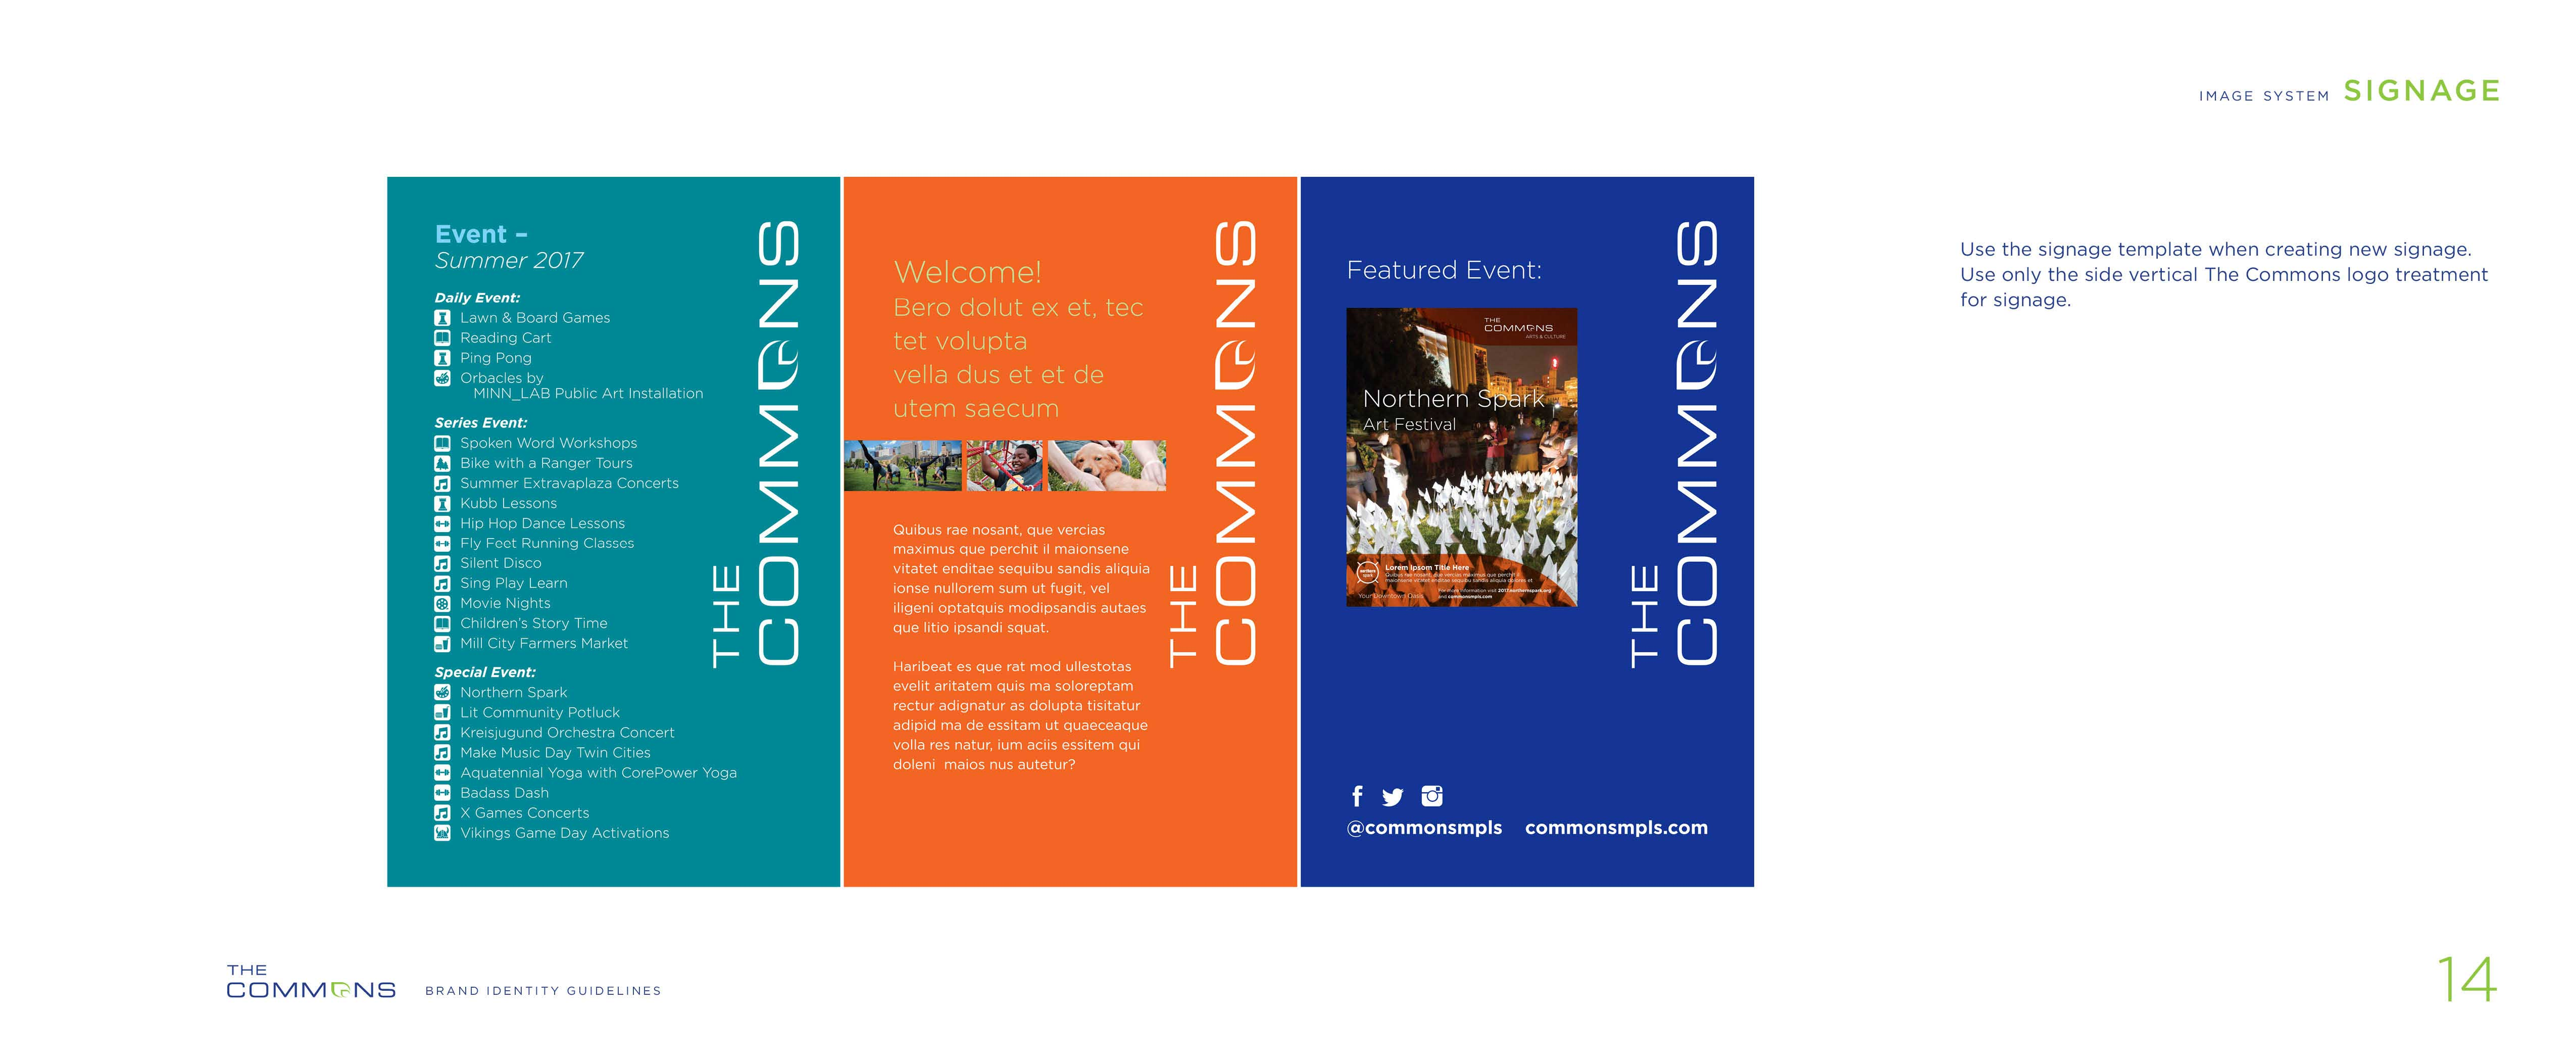 Brand guidelines for The Commons